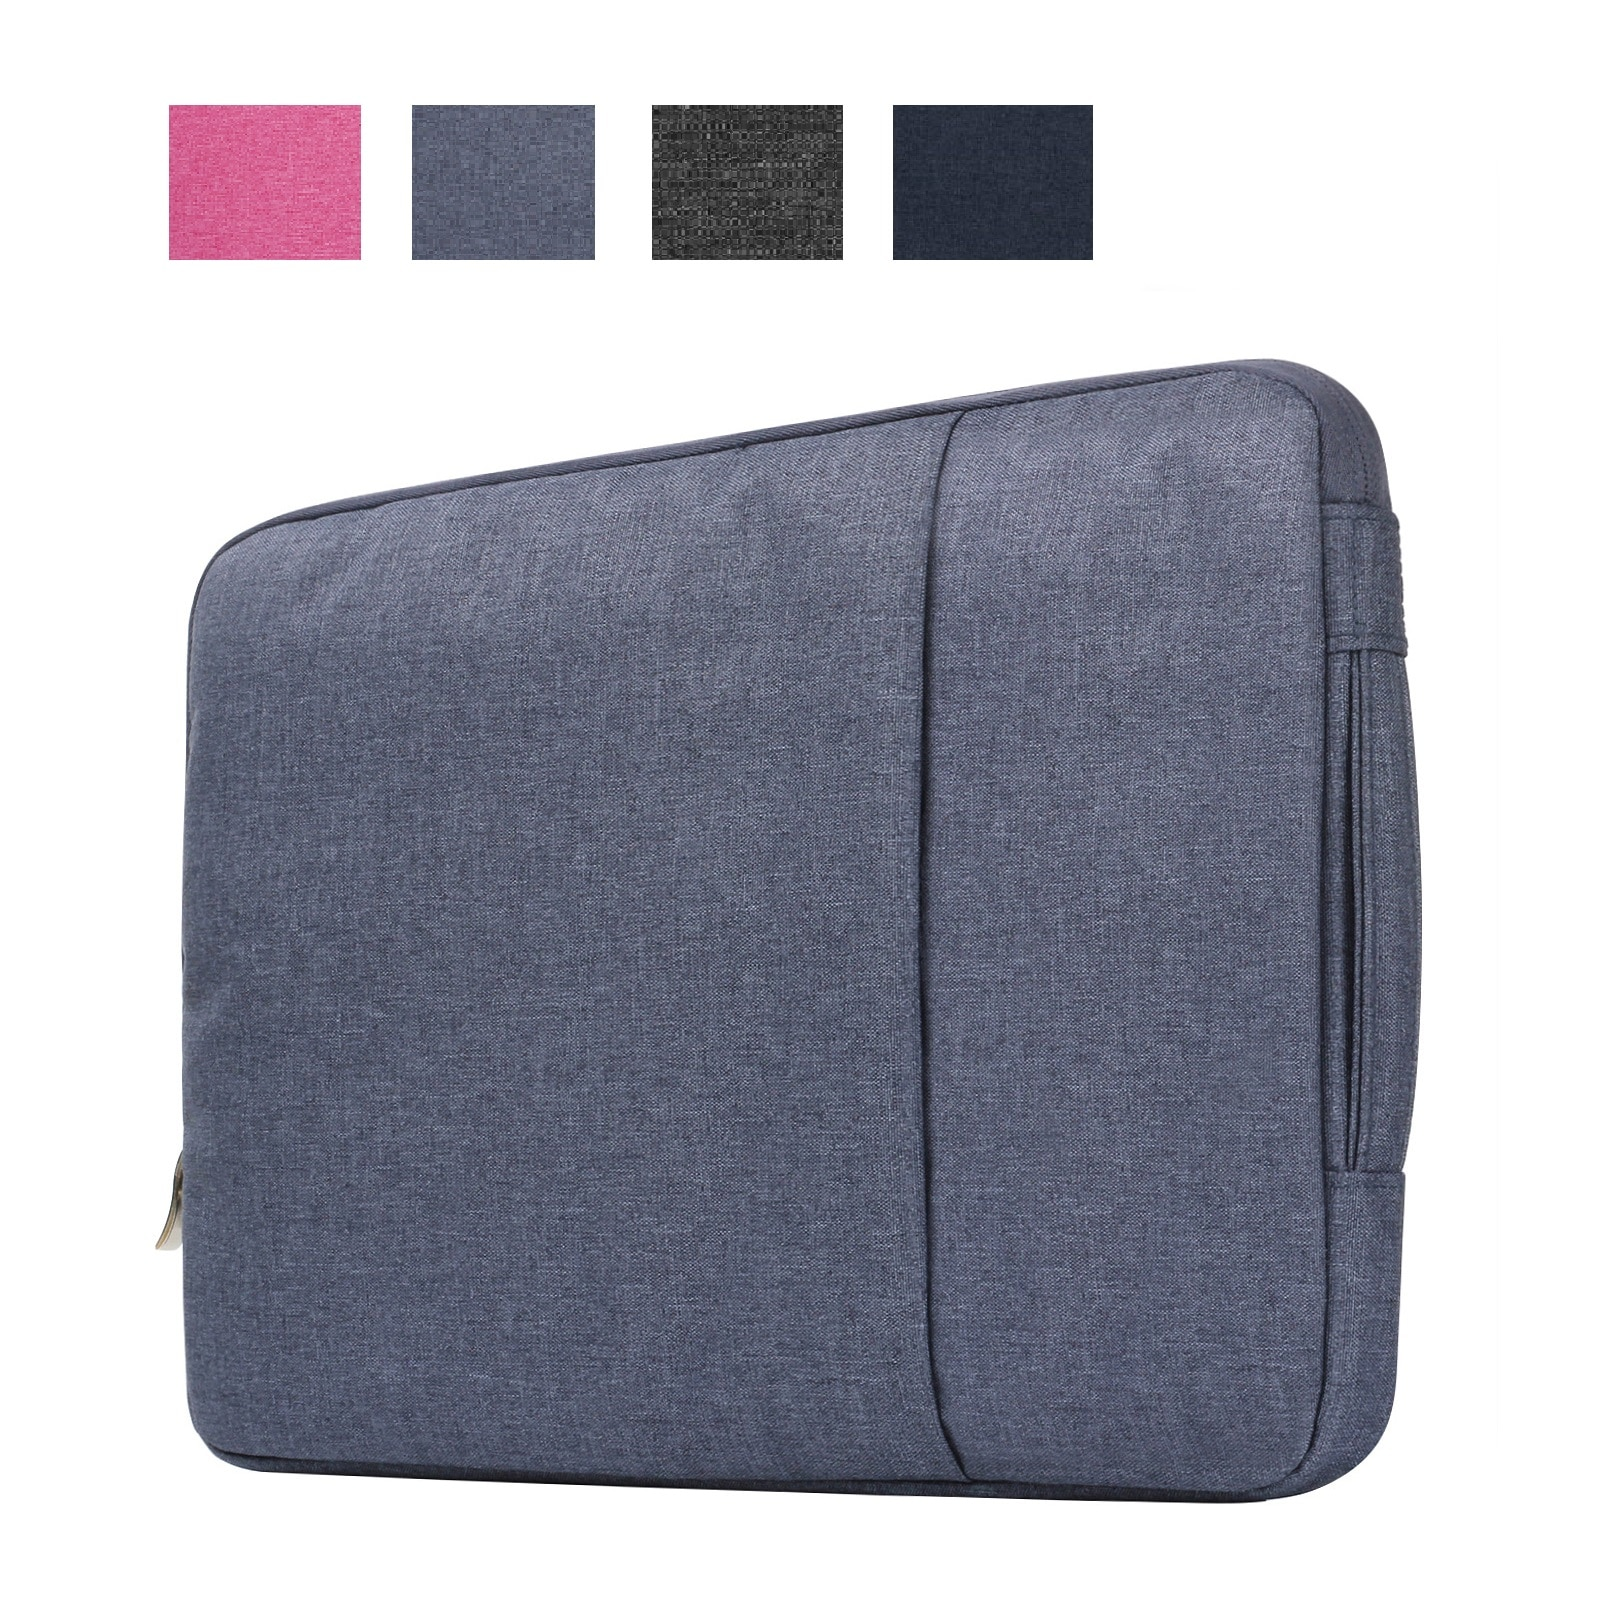 10.2'' Handbag Case For iPad 8th Generation 2020 10.2 Bag Sleeve Cover 2020 A2429 A2430 Shockproof Multi Pockets Pouch Bag Capa